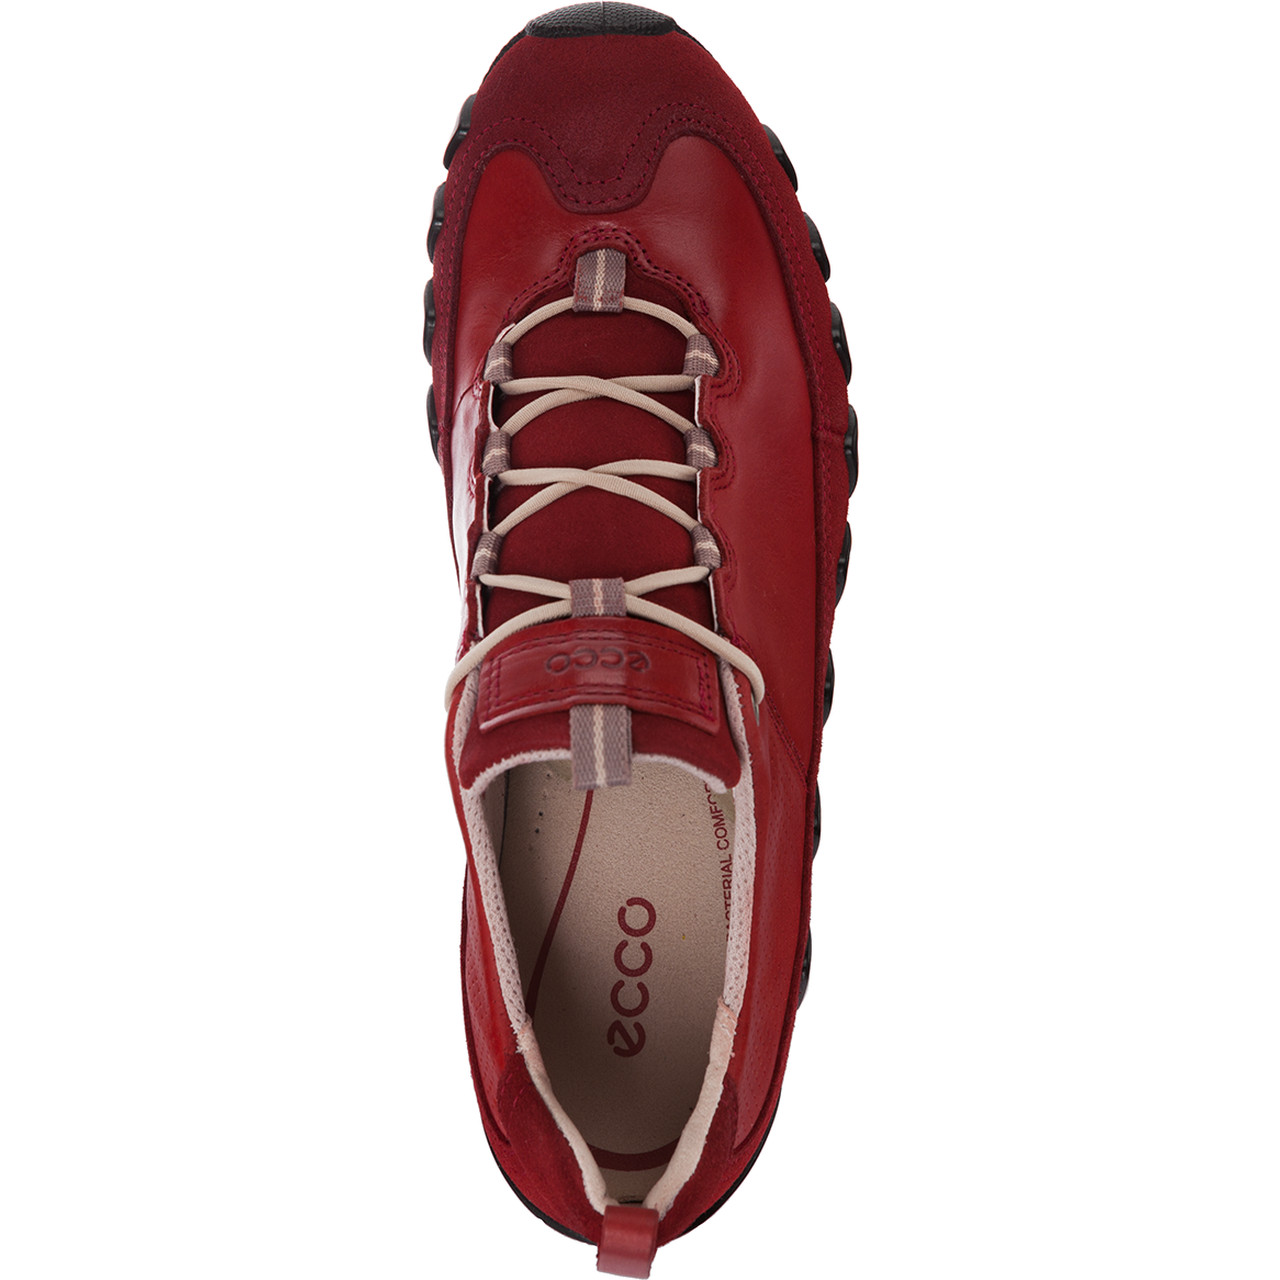 buty ecco damskie outlet